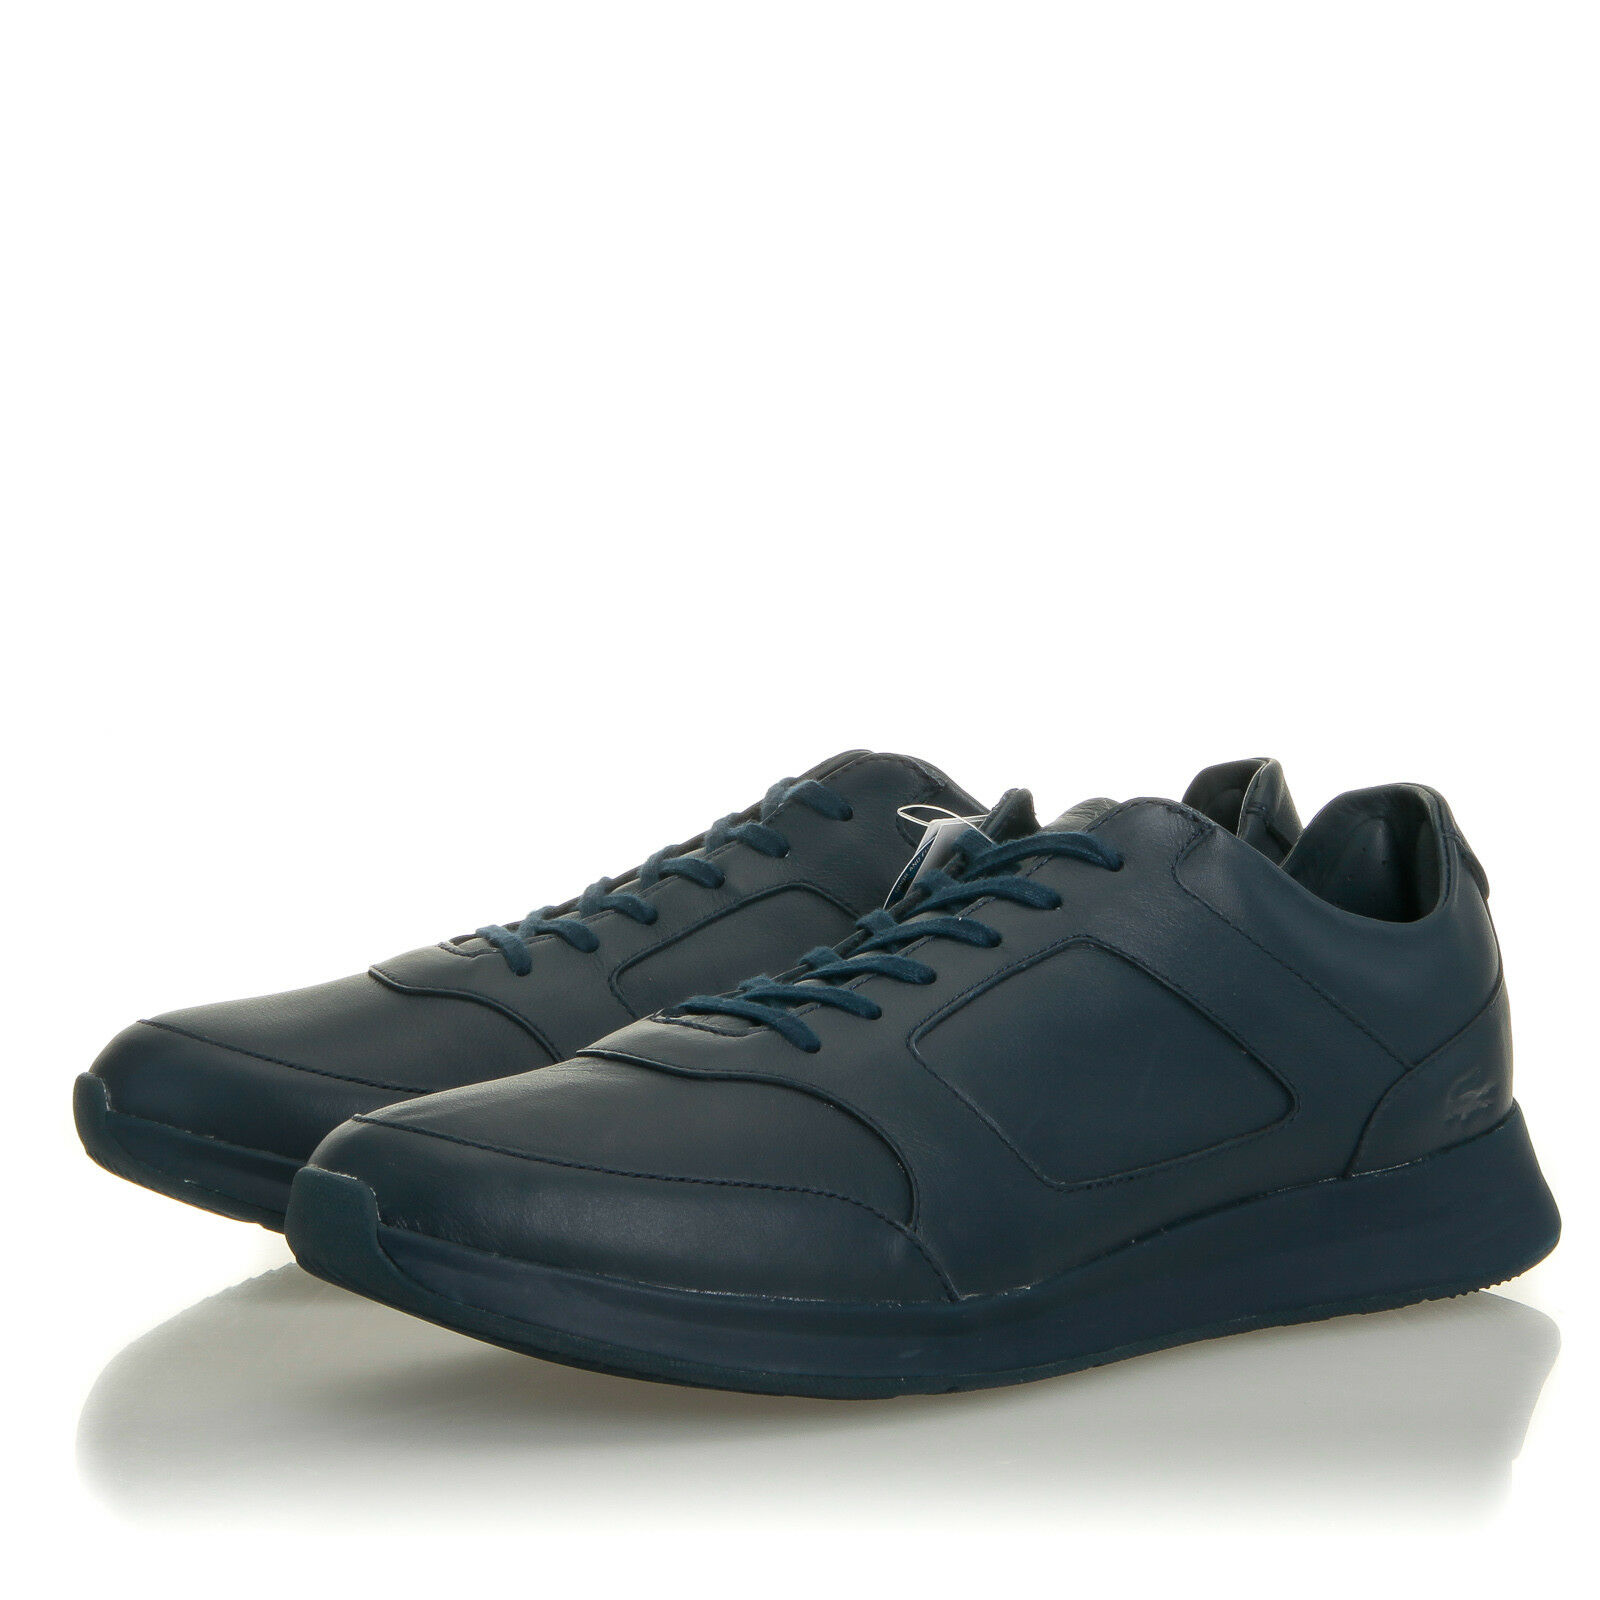 Lacoste Joggeur 316 Navy Blue Leather Sneaker - Uomo 12